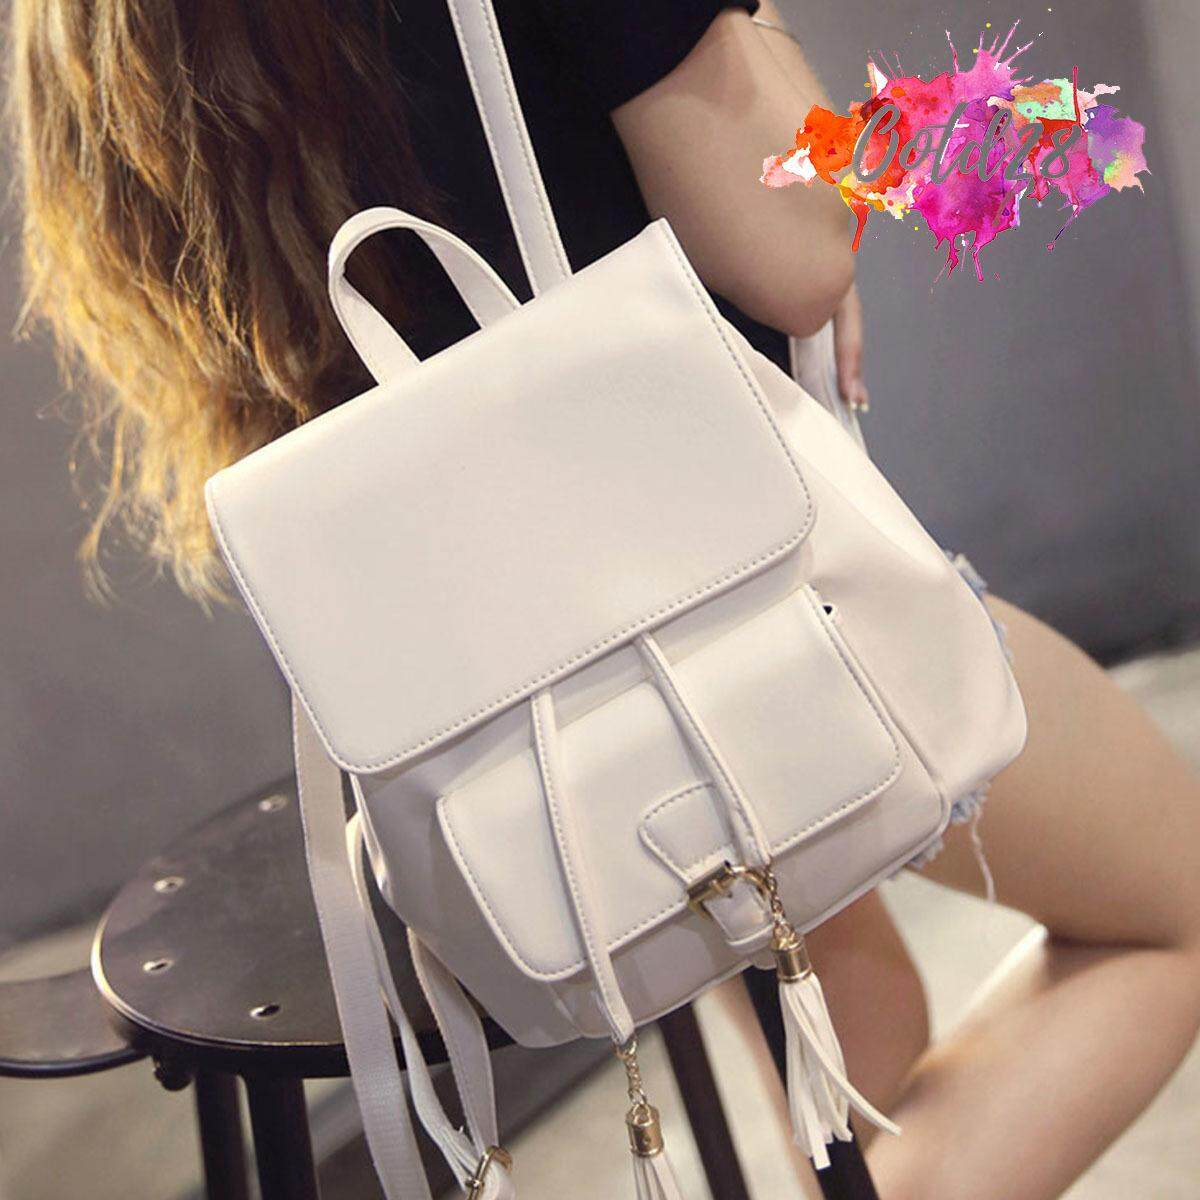 OOTD28 329W Women Designer For Her Leather Backpack Bag White d8a42e4a5f2e5